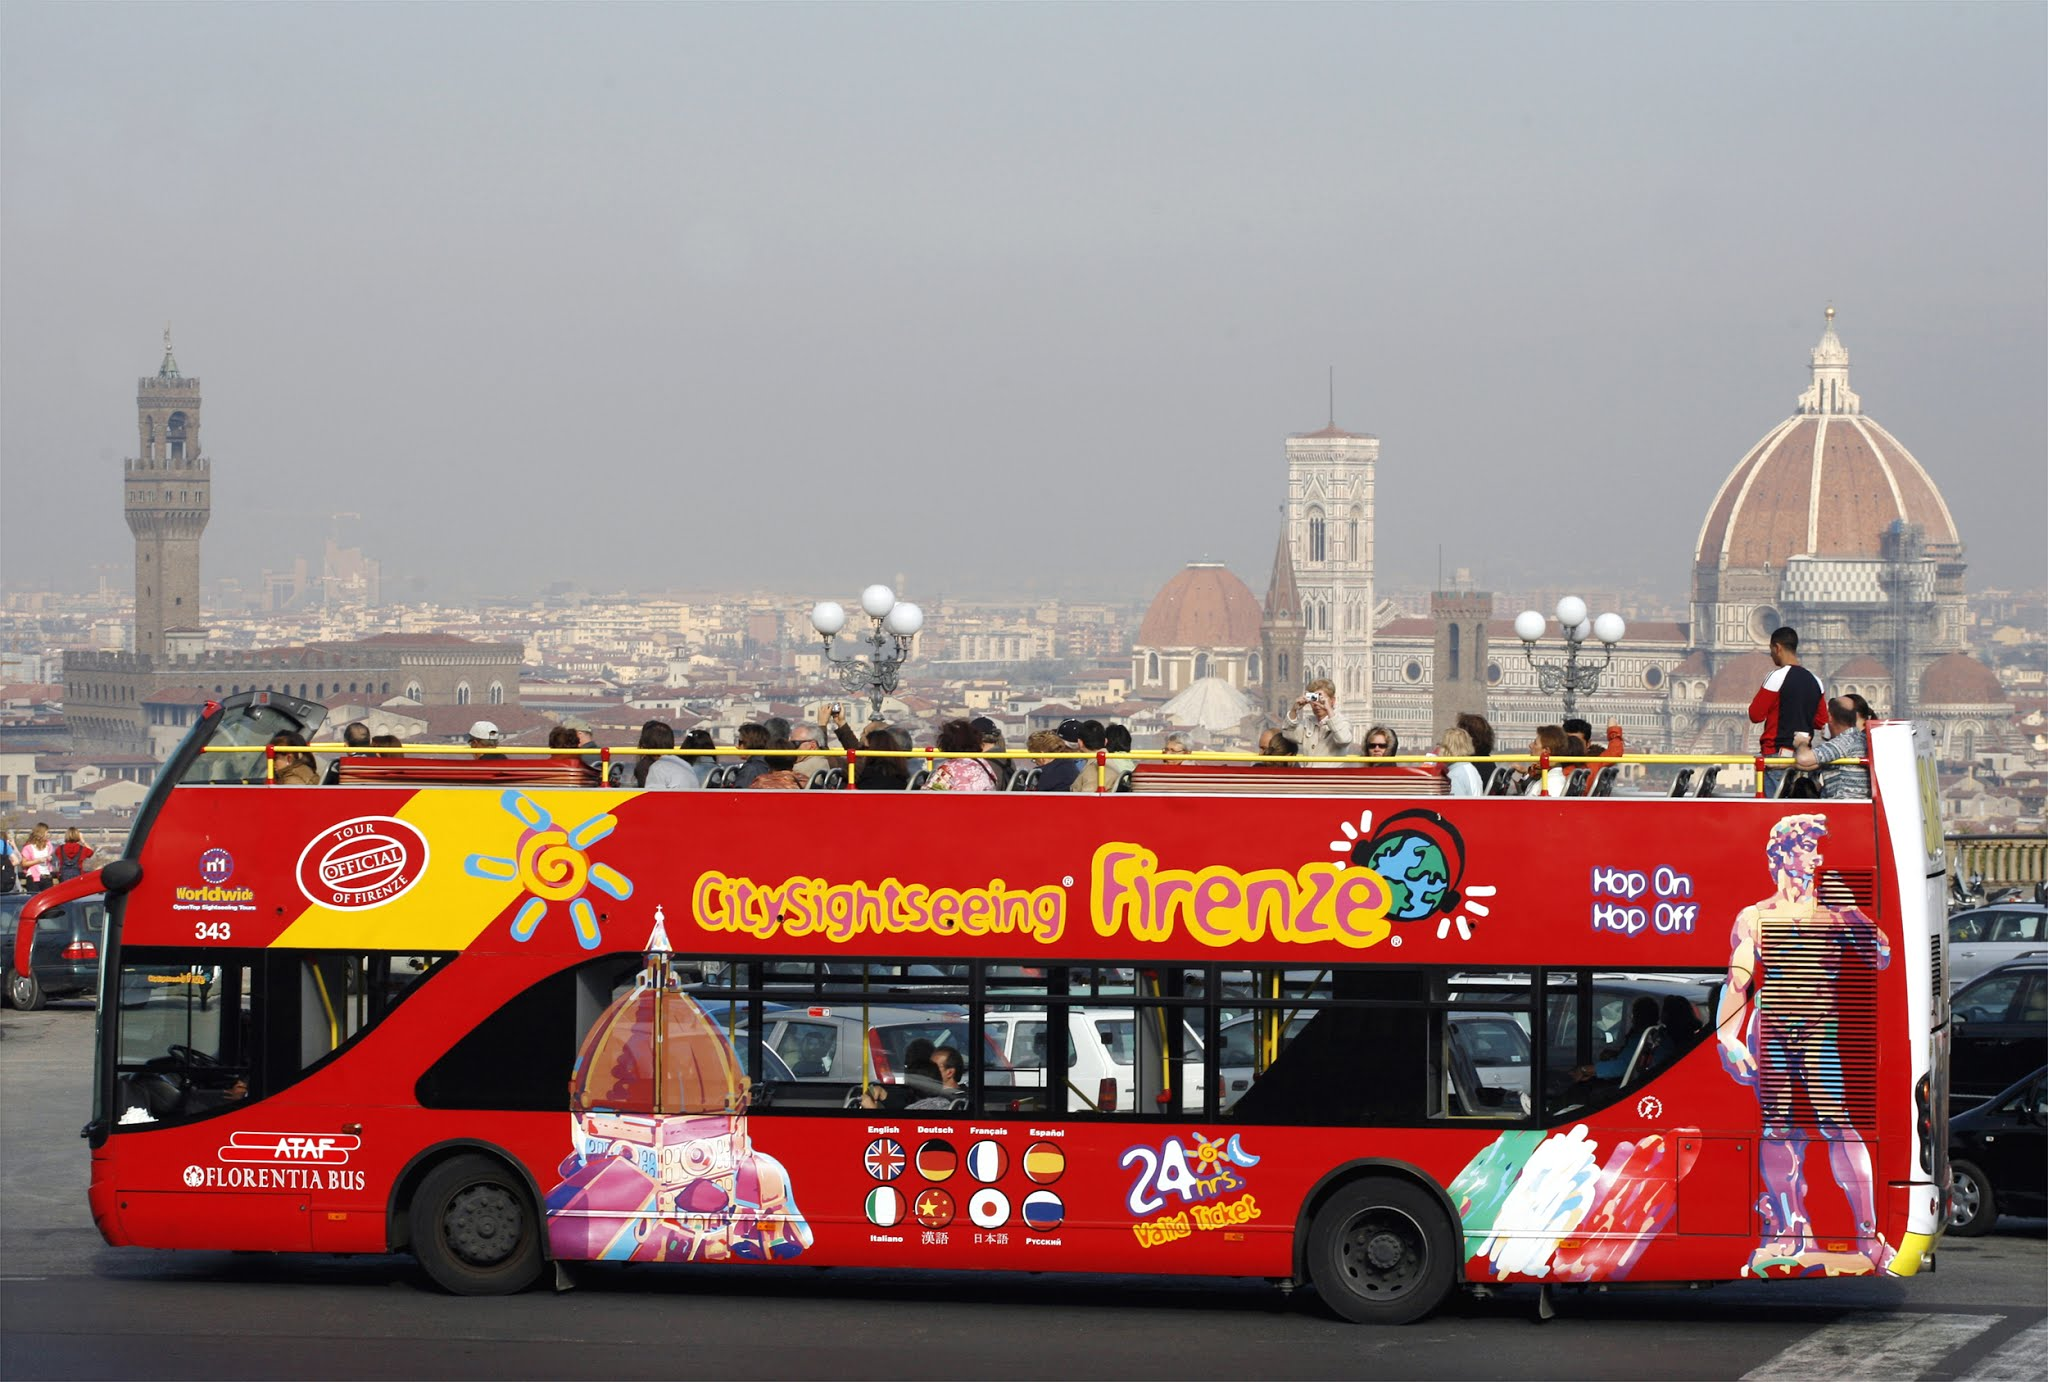 Bus City Sightseeing Florencia